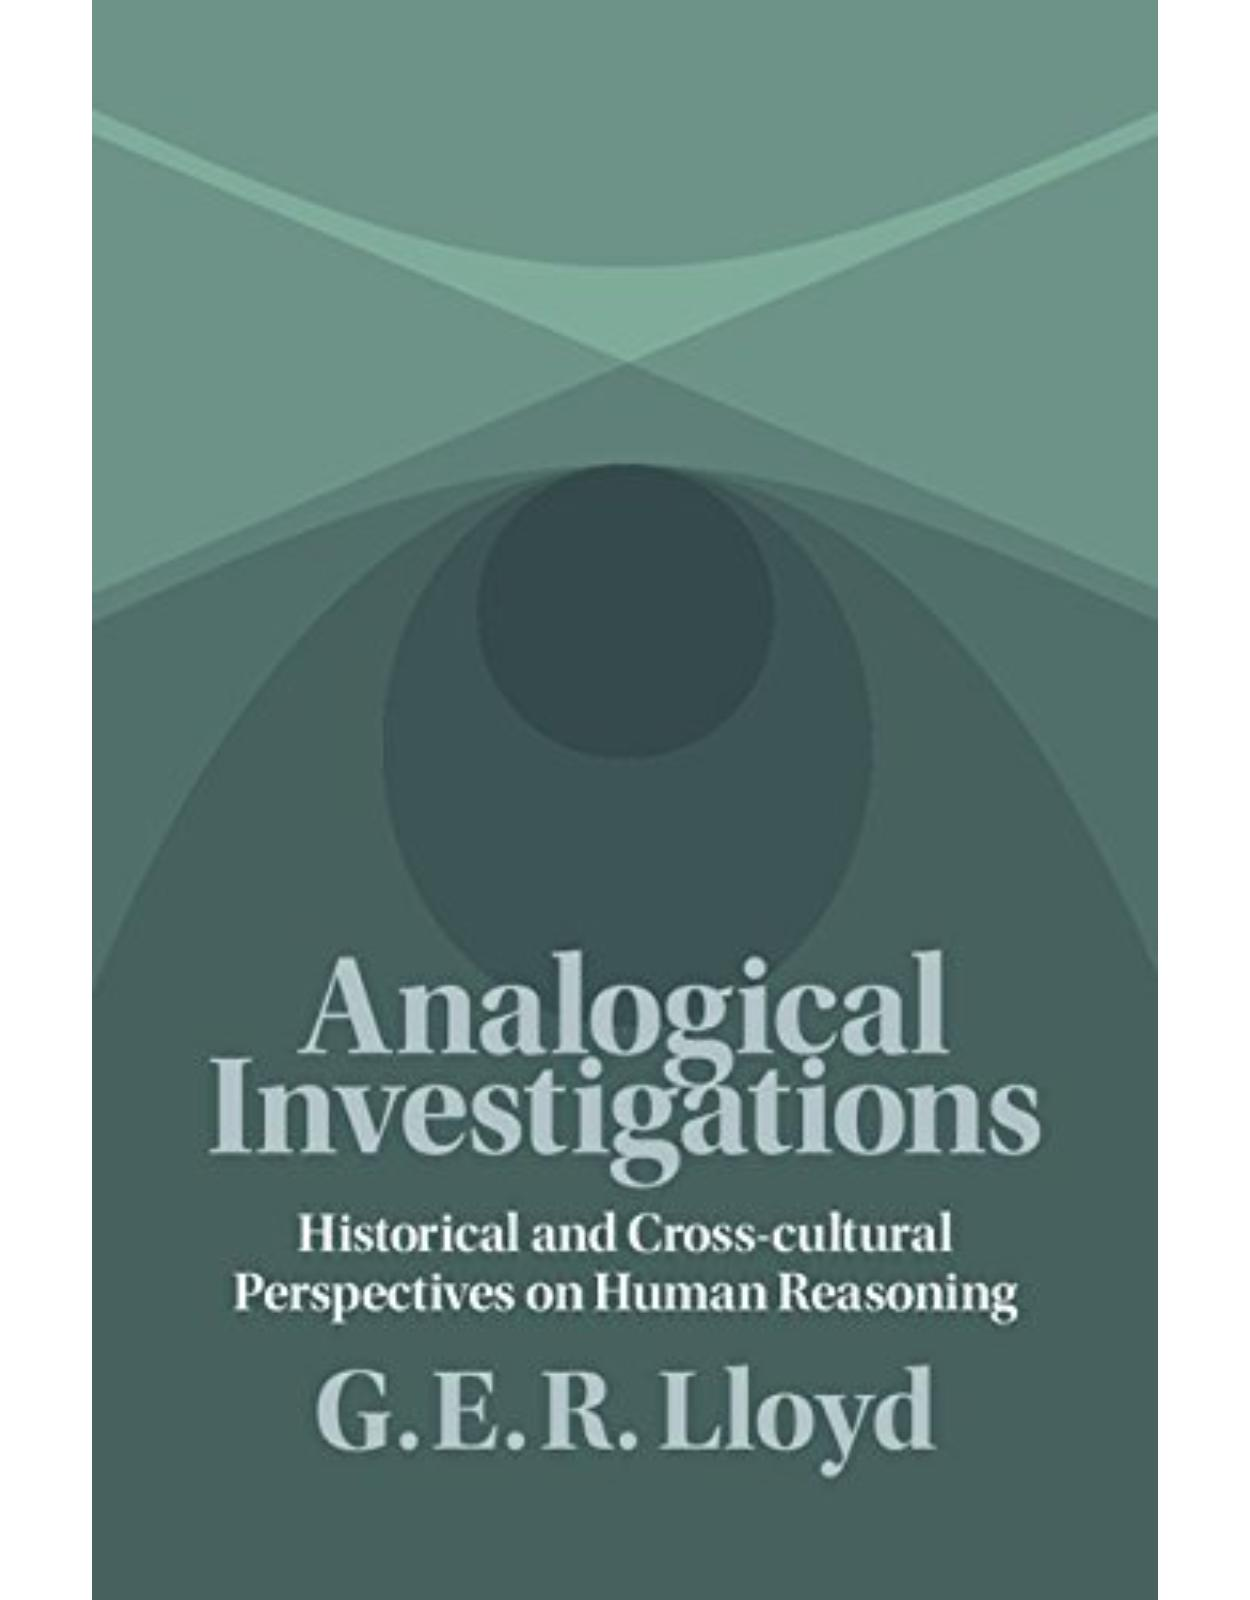 Analogical Investigations: Historical and Cross-Cultural Perspectives on Human Reasoning